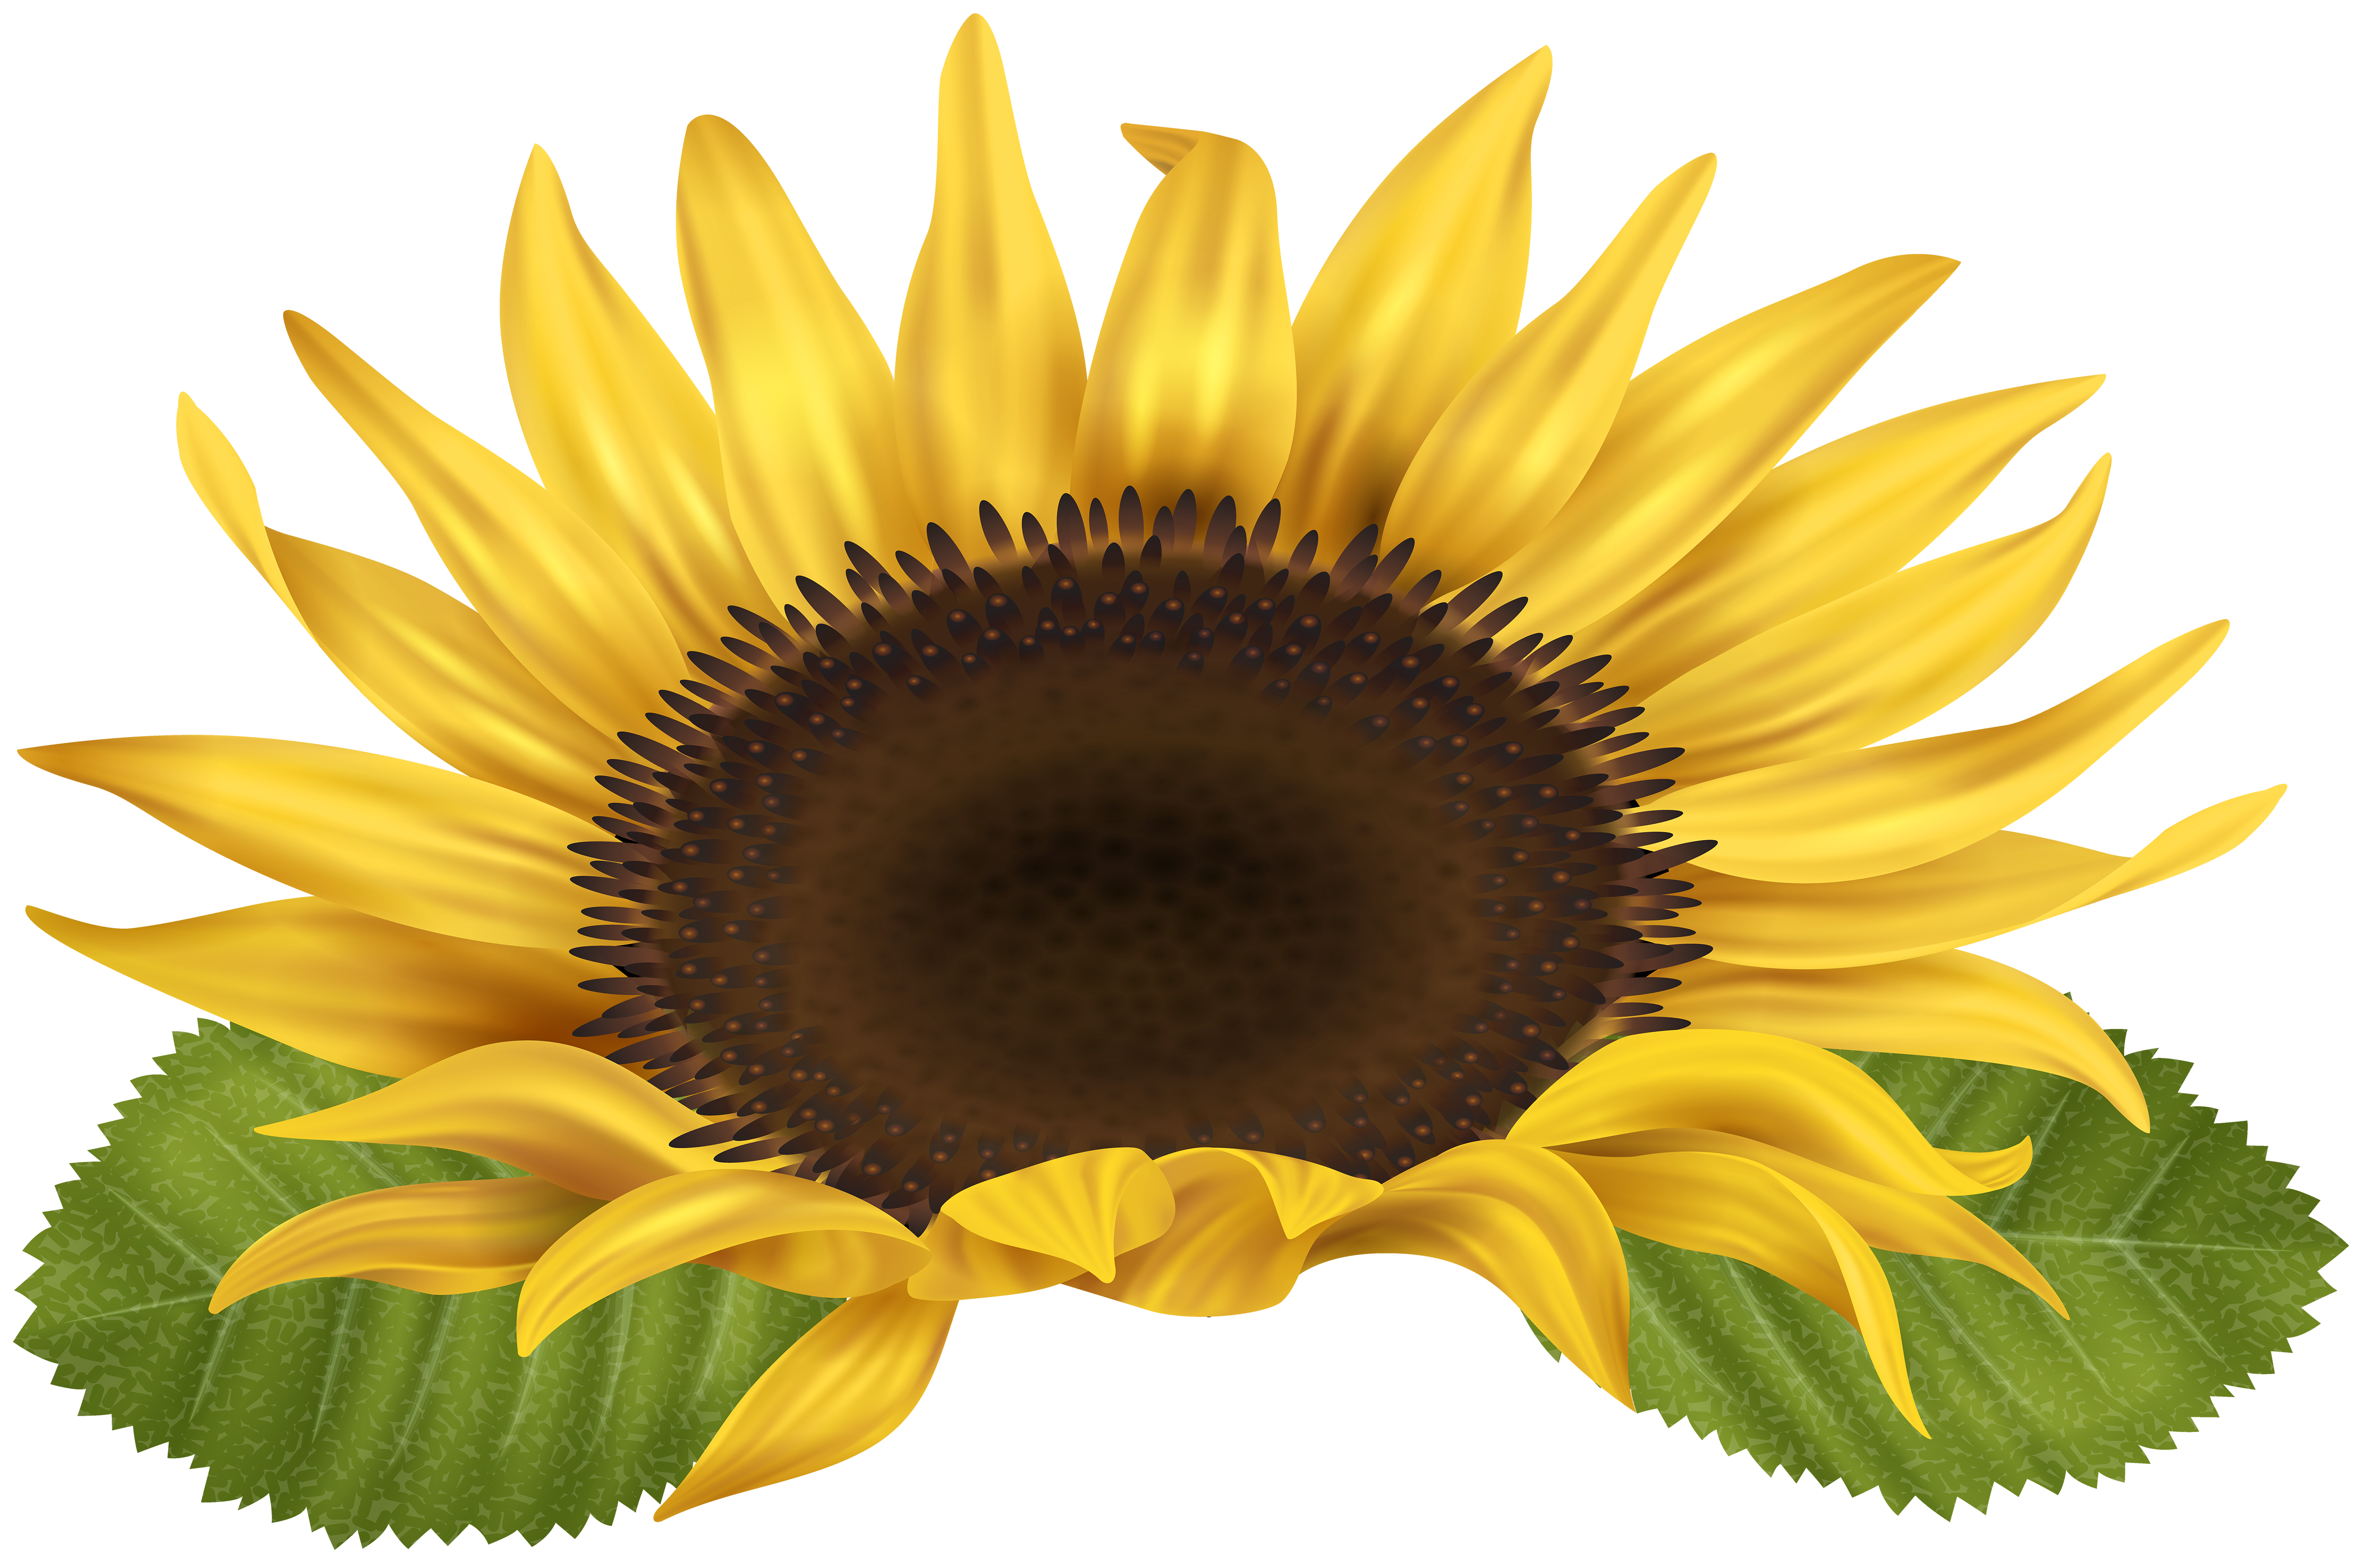 Sun flower clipart clip art free stock Sunflower PNG Clip Art Image | Gallery Yopriceville - High-Quality ... clip art free stock